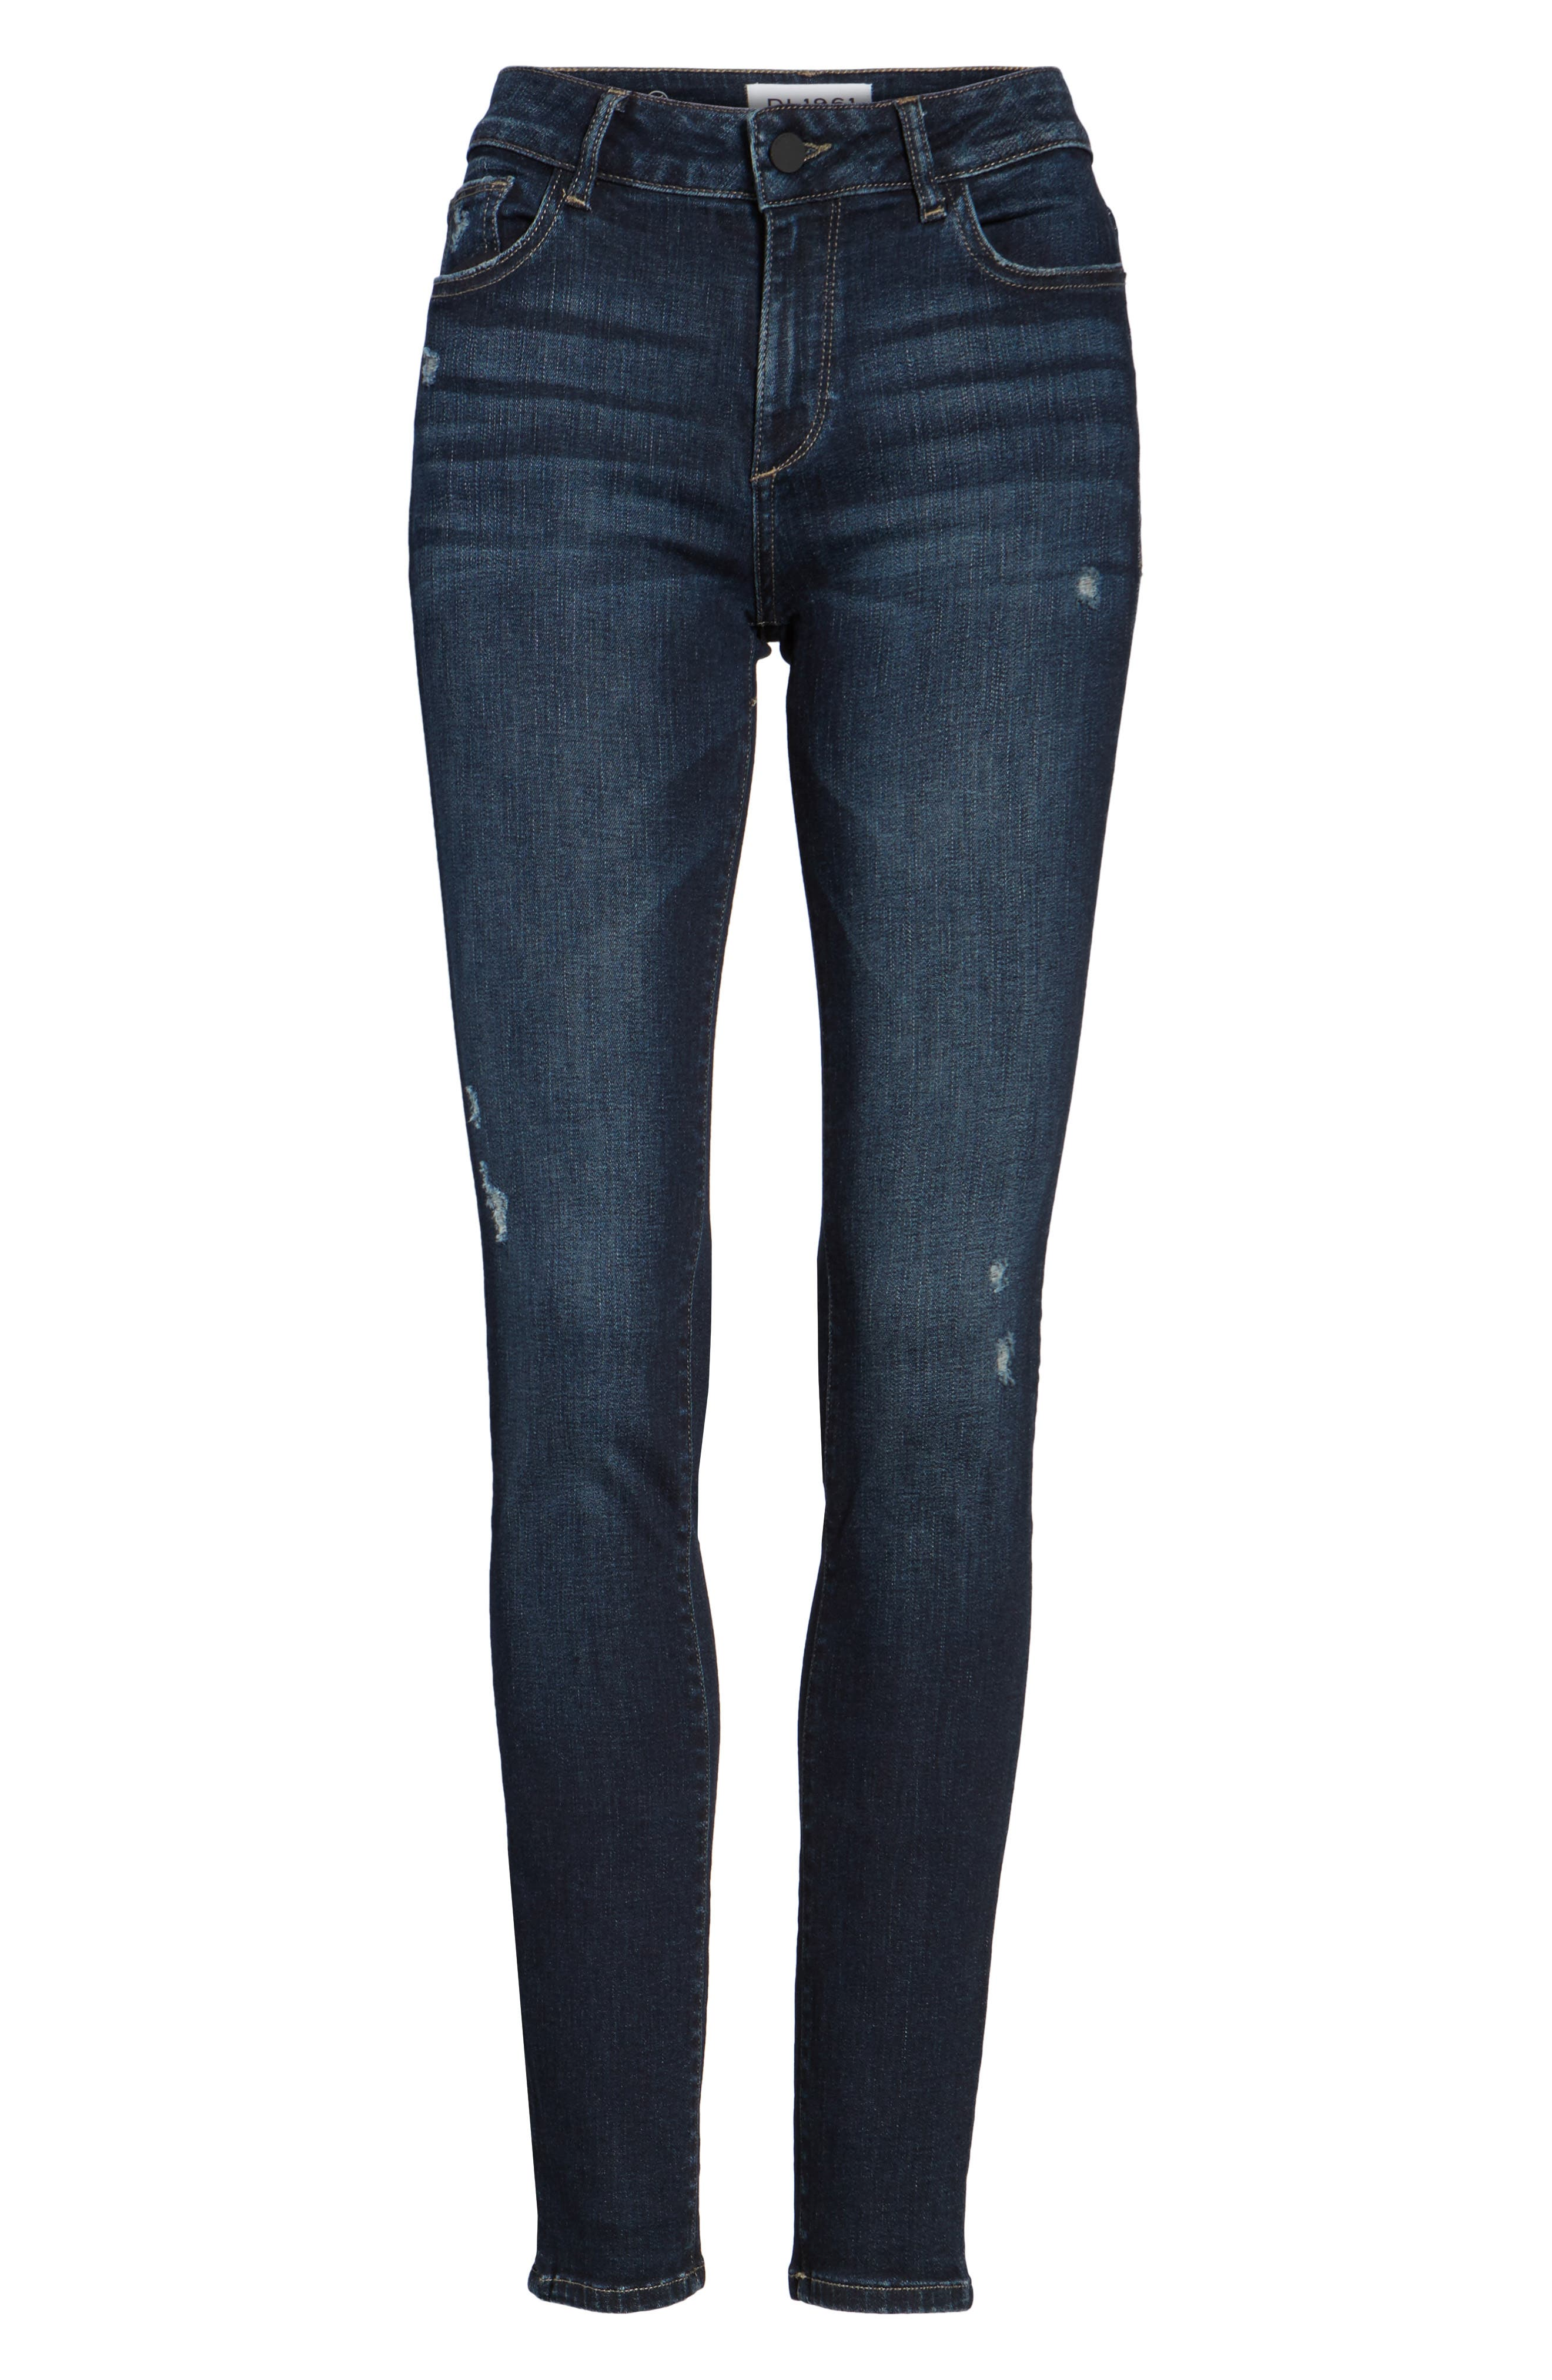 Florence Instasculpt Skinny Jeans,                             Alternate thumbnail 6, color,                             Darcy